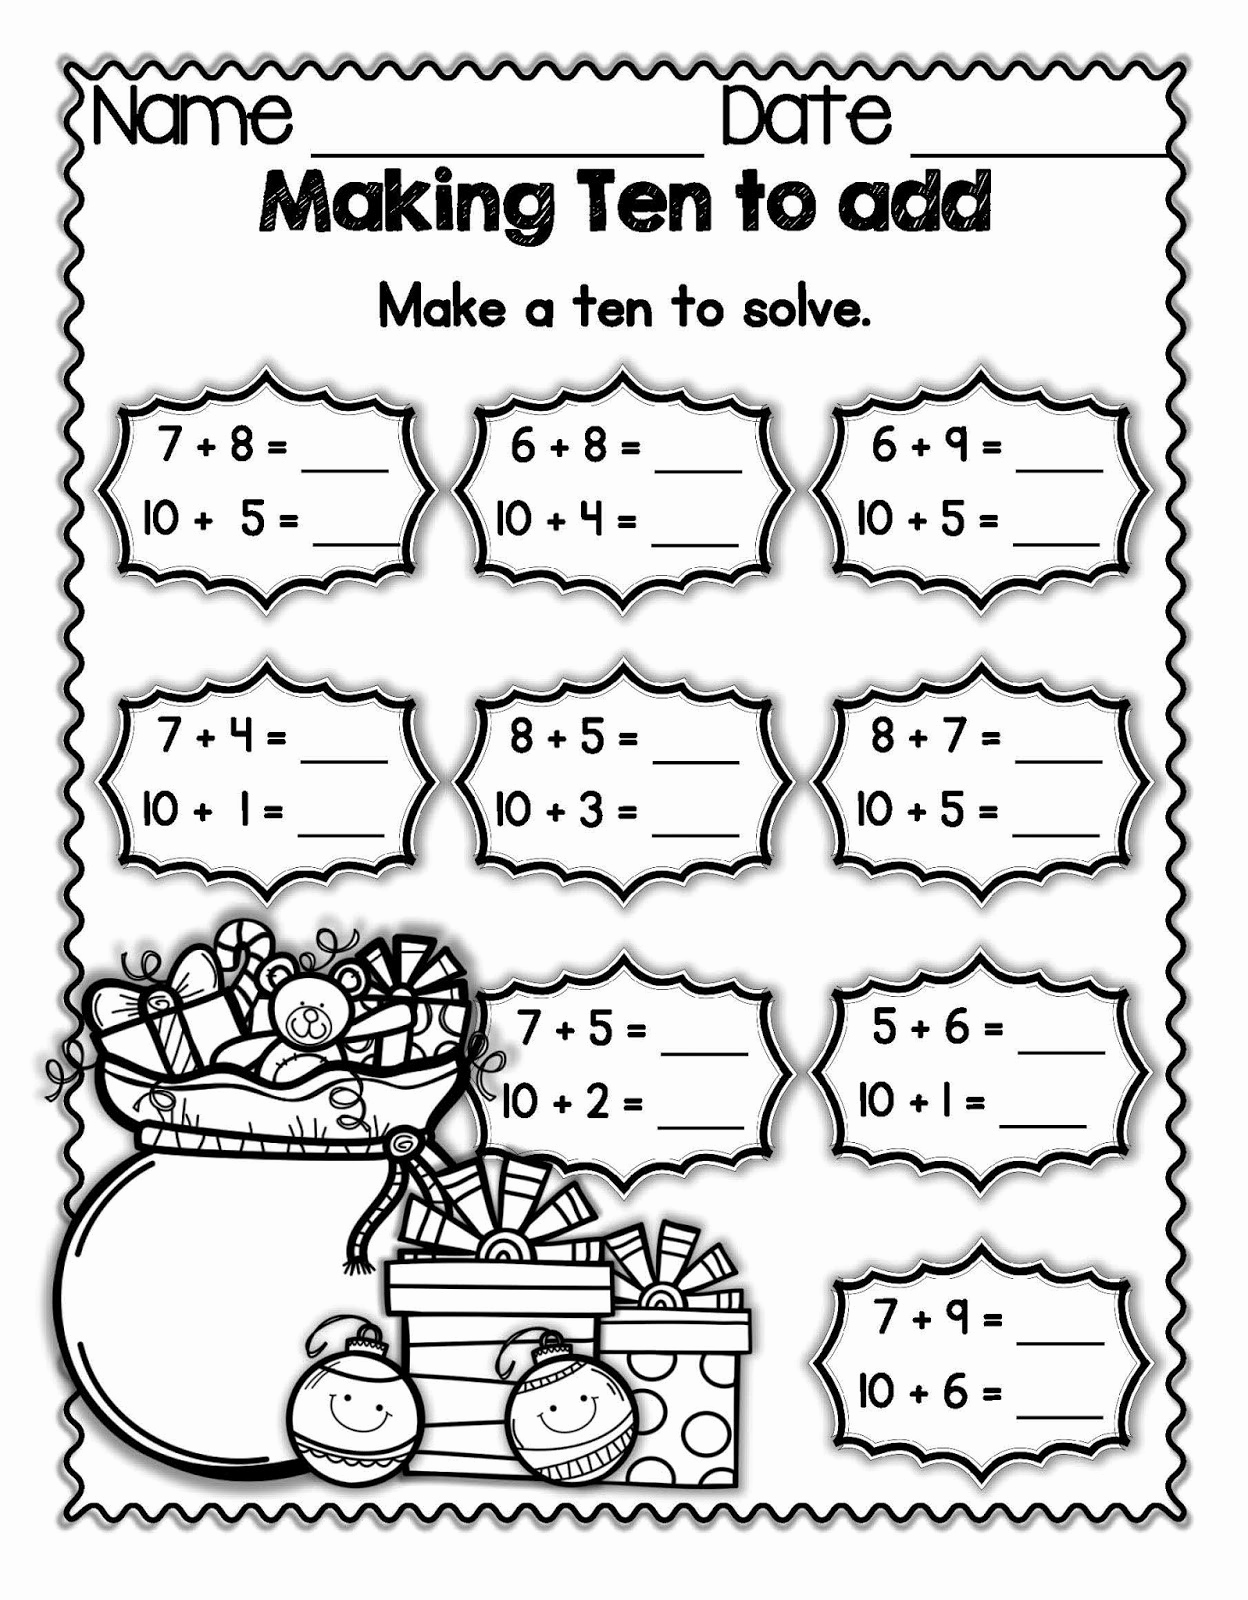 Repeated Addition Worksheets 2nd Grade Awesome 20 Repeated Addition Worksheets 2nd Grade